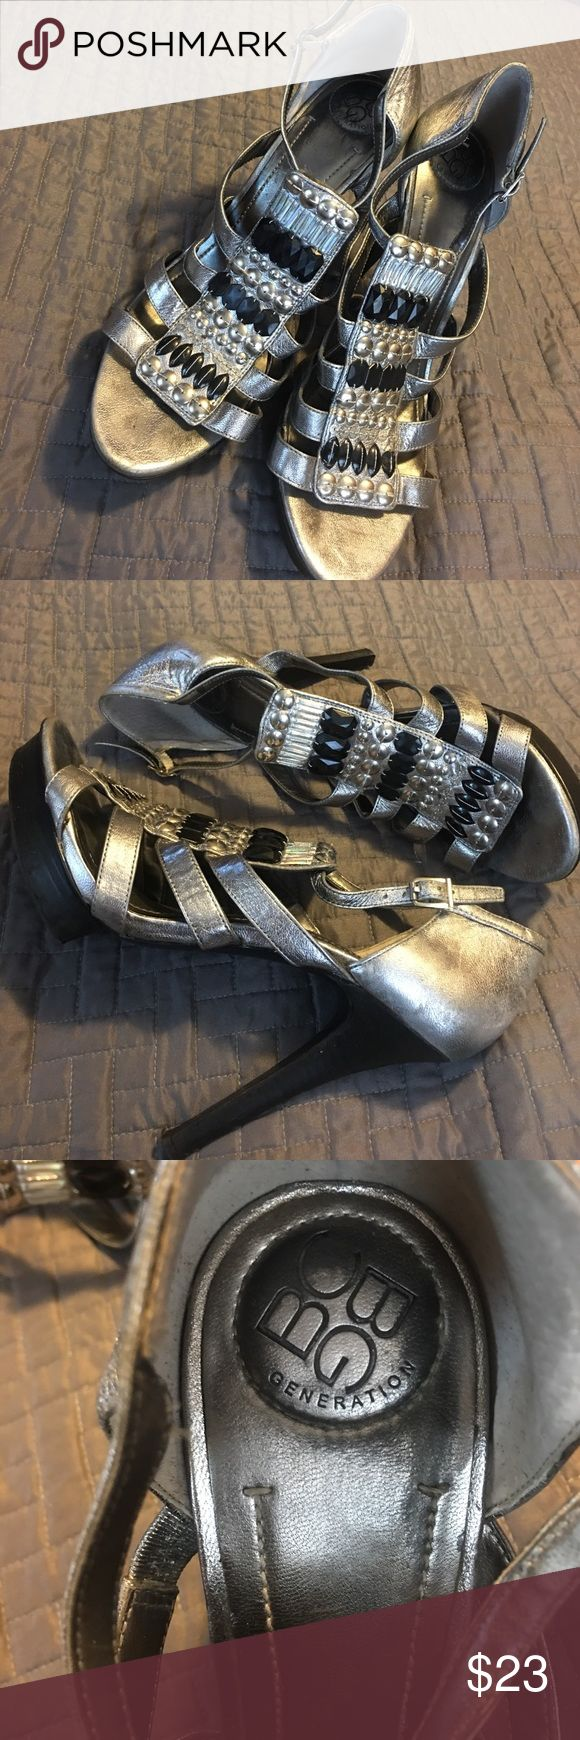 BCBG Generation Silver Strappy Heels Sandal Beaded BCBG Generation Silver High Heel Sandal with Beading. Size 9  leather uppers. 3 1/2 inch heel with 1 inch lift. In great shape. So very cute and stylish! BCBGeneration Shoes Heels